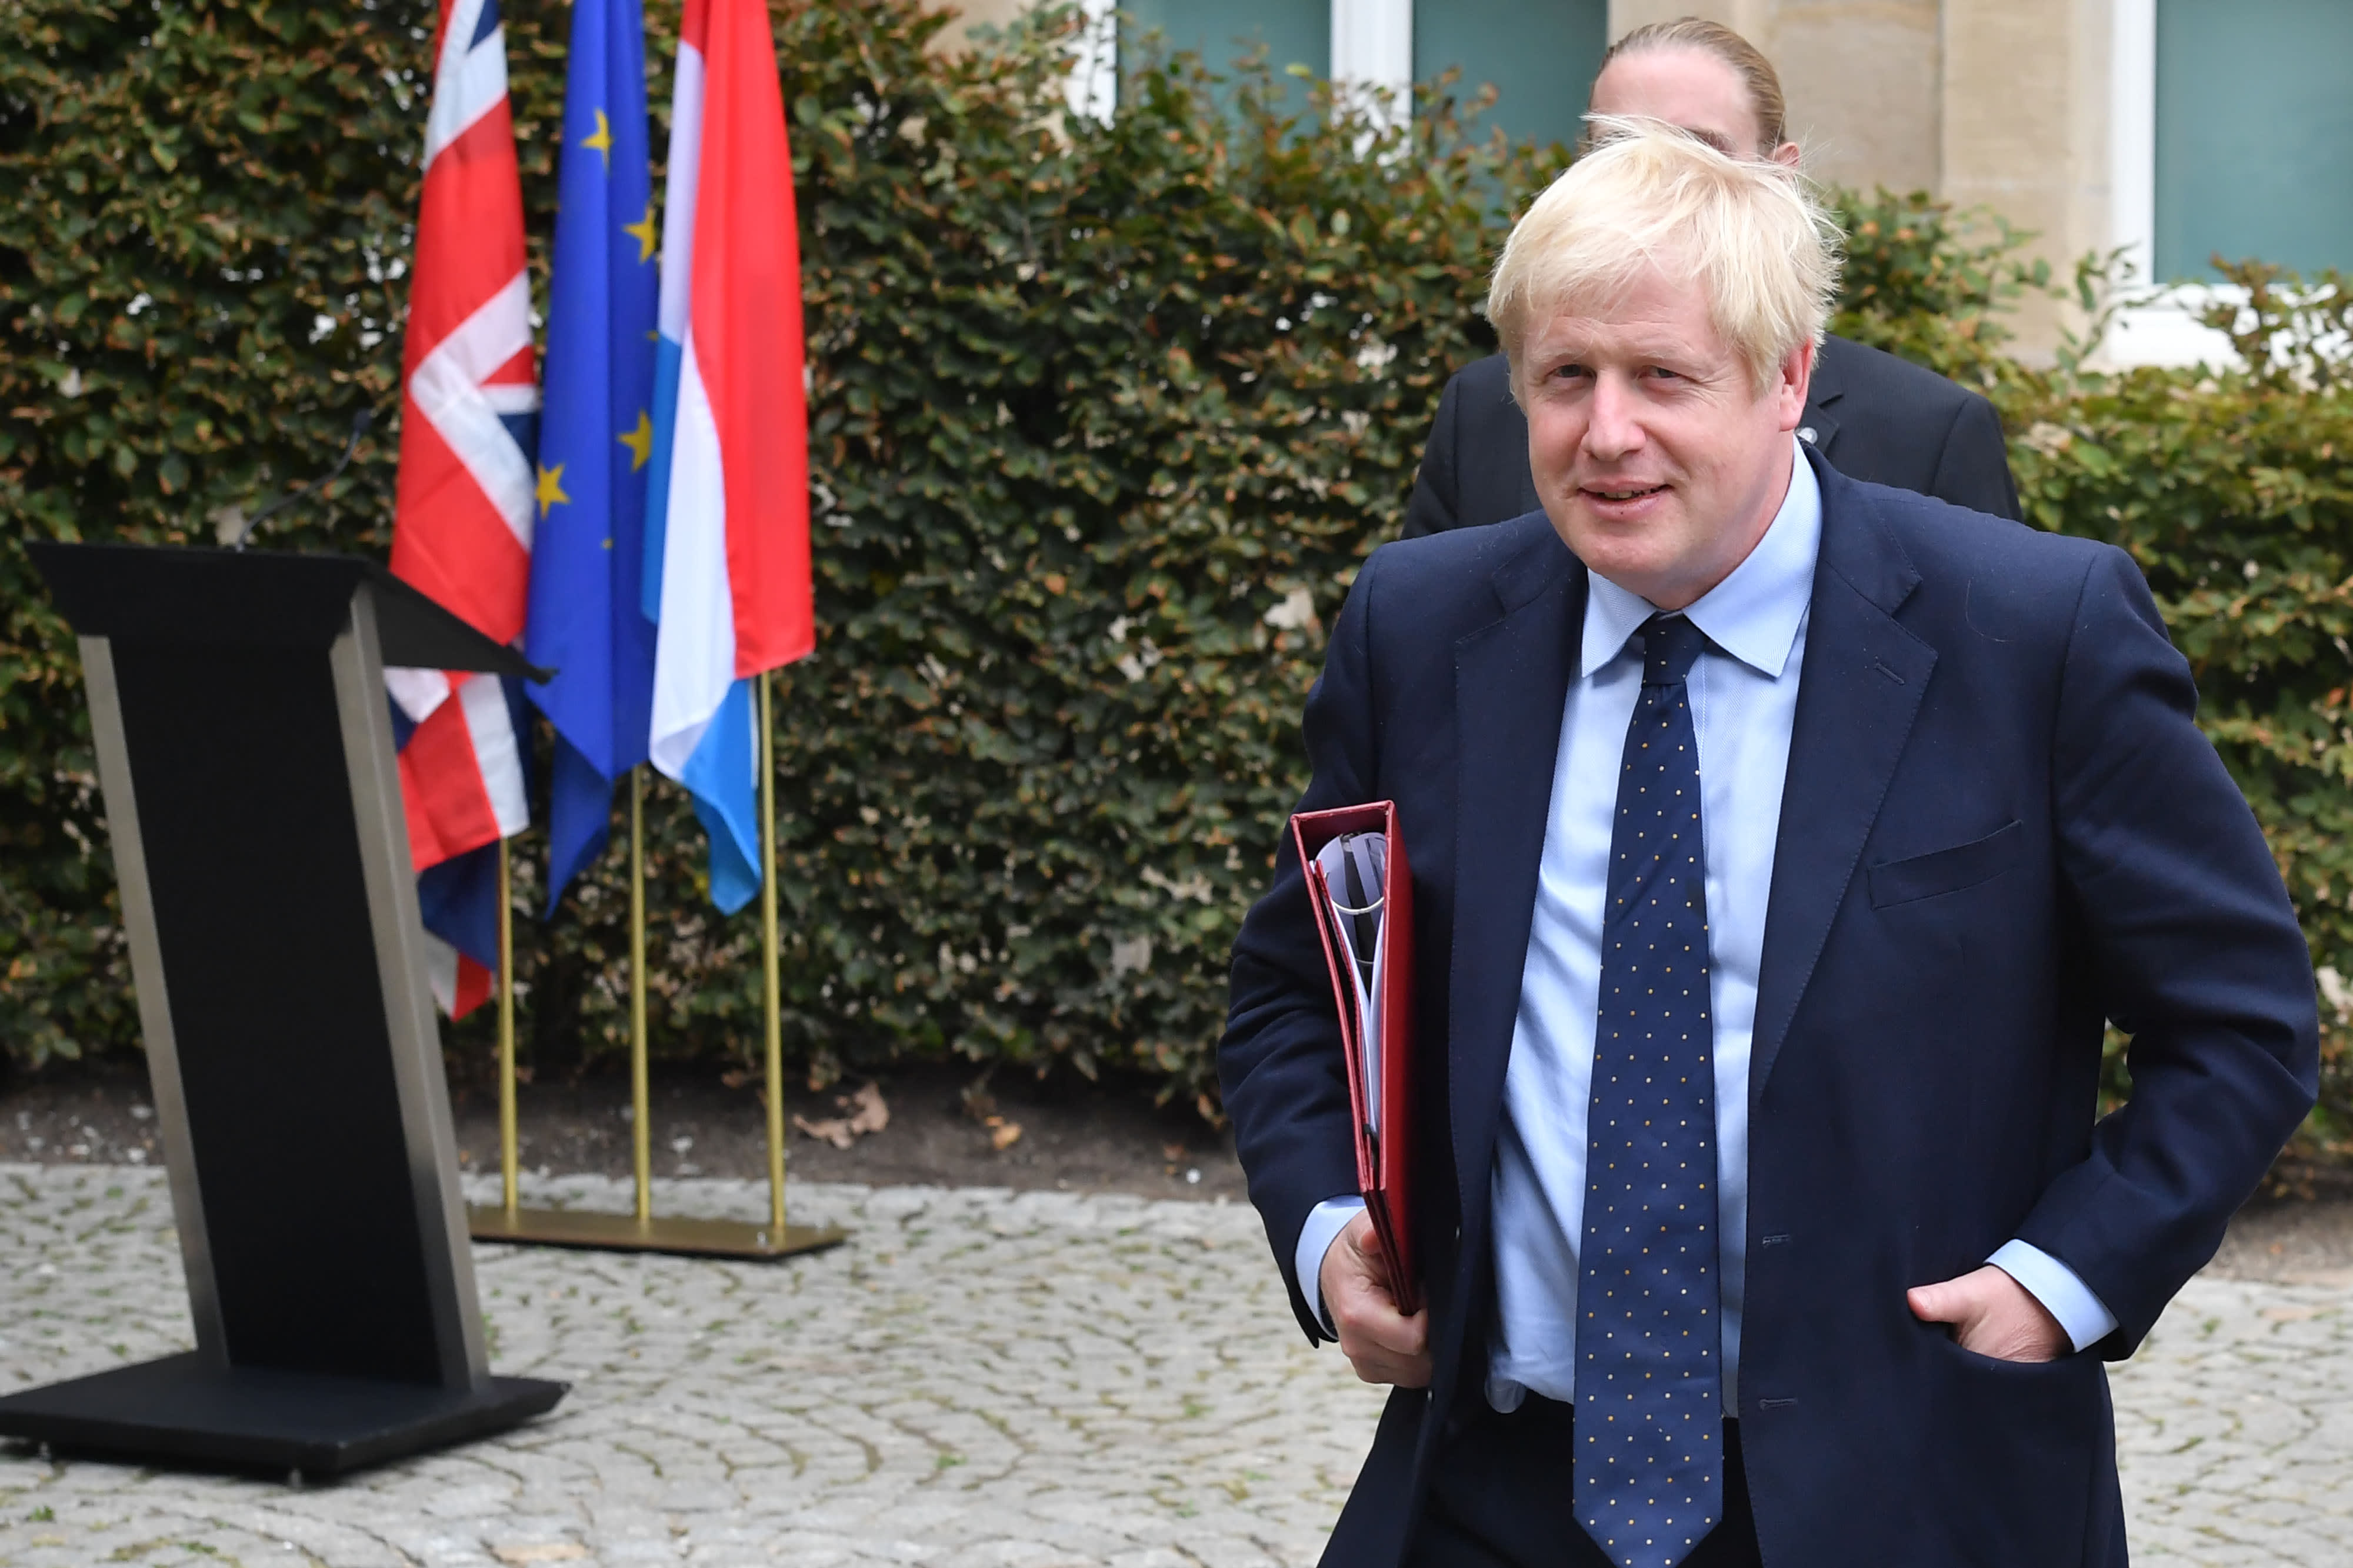 UK Prime Minister Johnson pulls out of press conference after crowd jeering